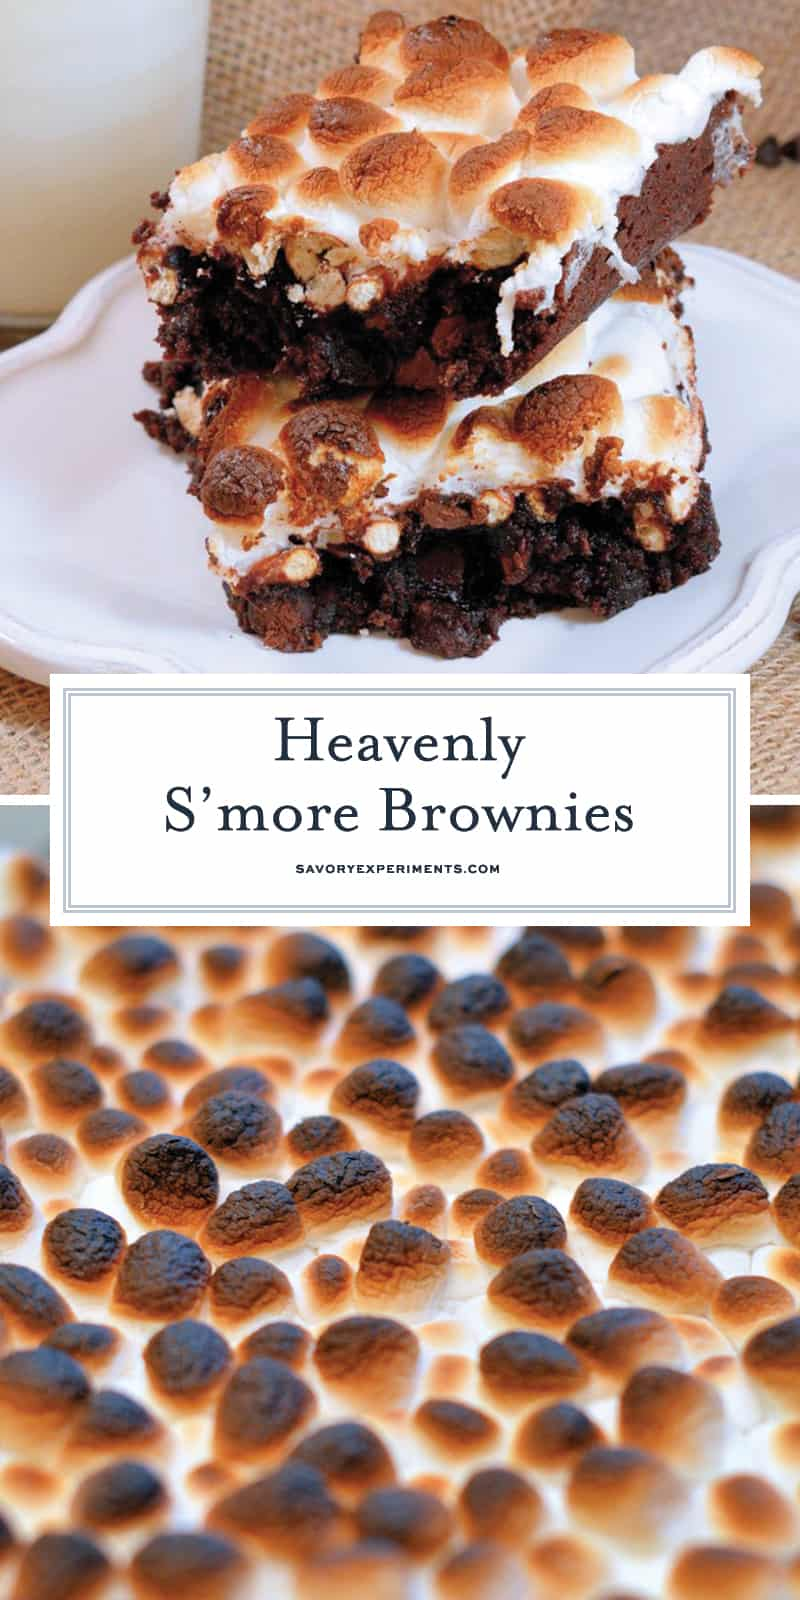 S'more Brownies is a delicious homemade brownie recipe made from double chocolate brownies, a layer of crunchy, salty pretzels and gooey melted marshmallows! #smoresbrownies #homemadebrownies www.savoryexperiments.com